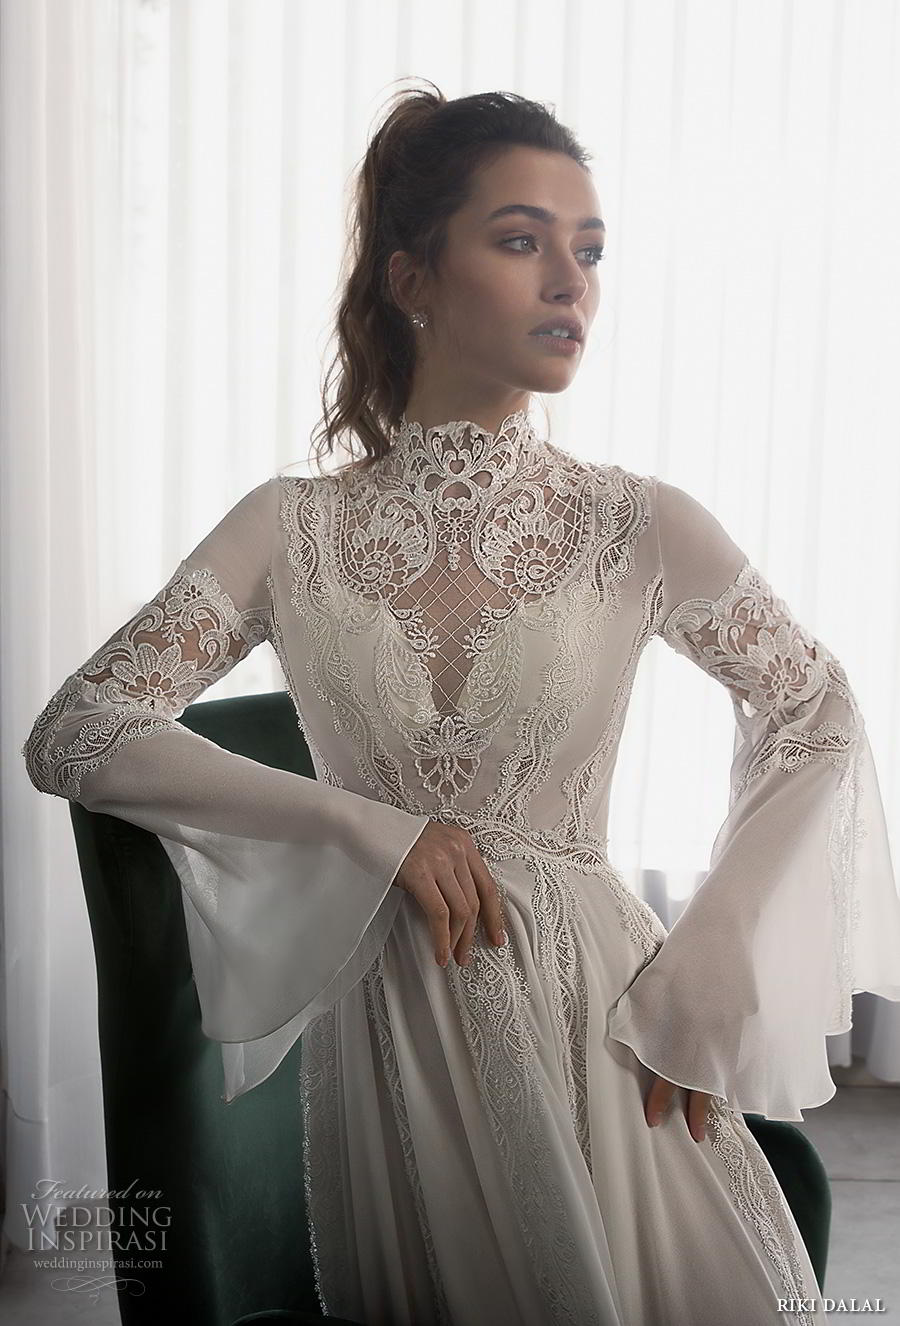 riki dalal 2018 glamour bridal long bell sleeves high neck heavily embellished bodice romantic bohemian a  line wedding dress cross strap back sweep train (4) zv